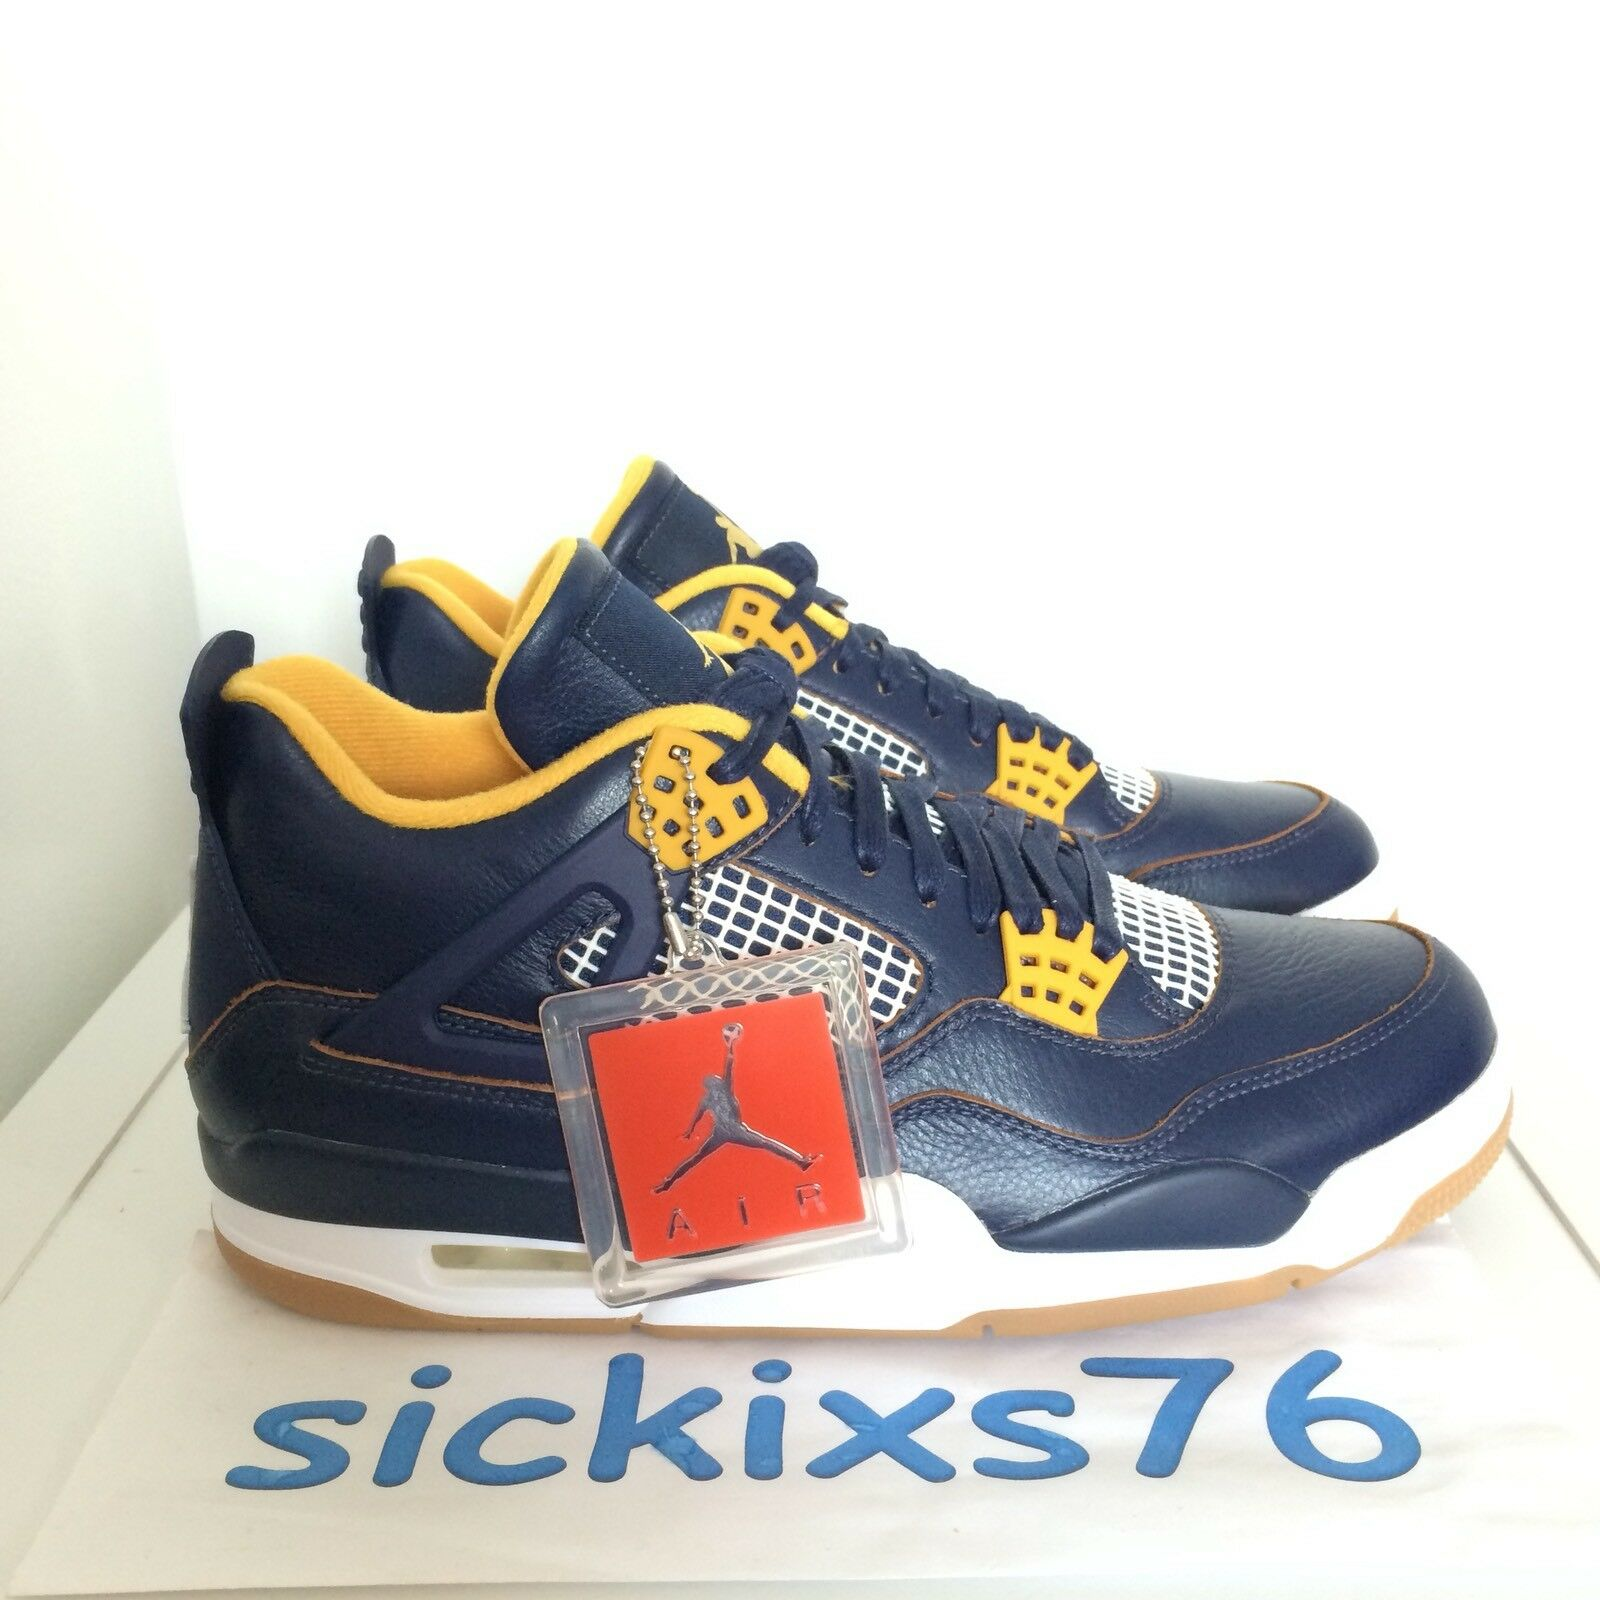 DS Men's Nike AIR JORDAN 4 RETRO 'Dunk From Above' Sz 9.5/Price reduction Seasonal clearance sale